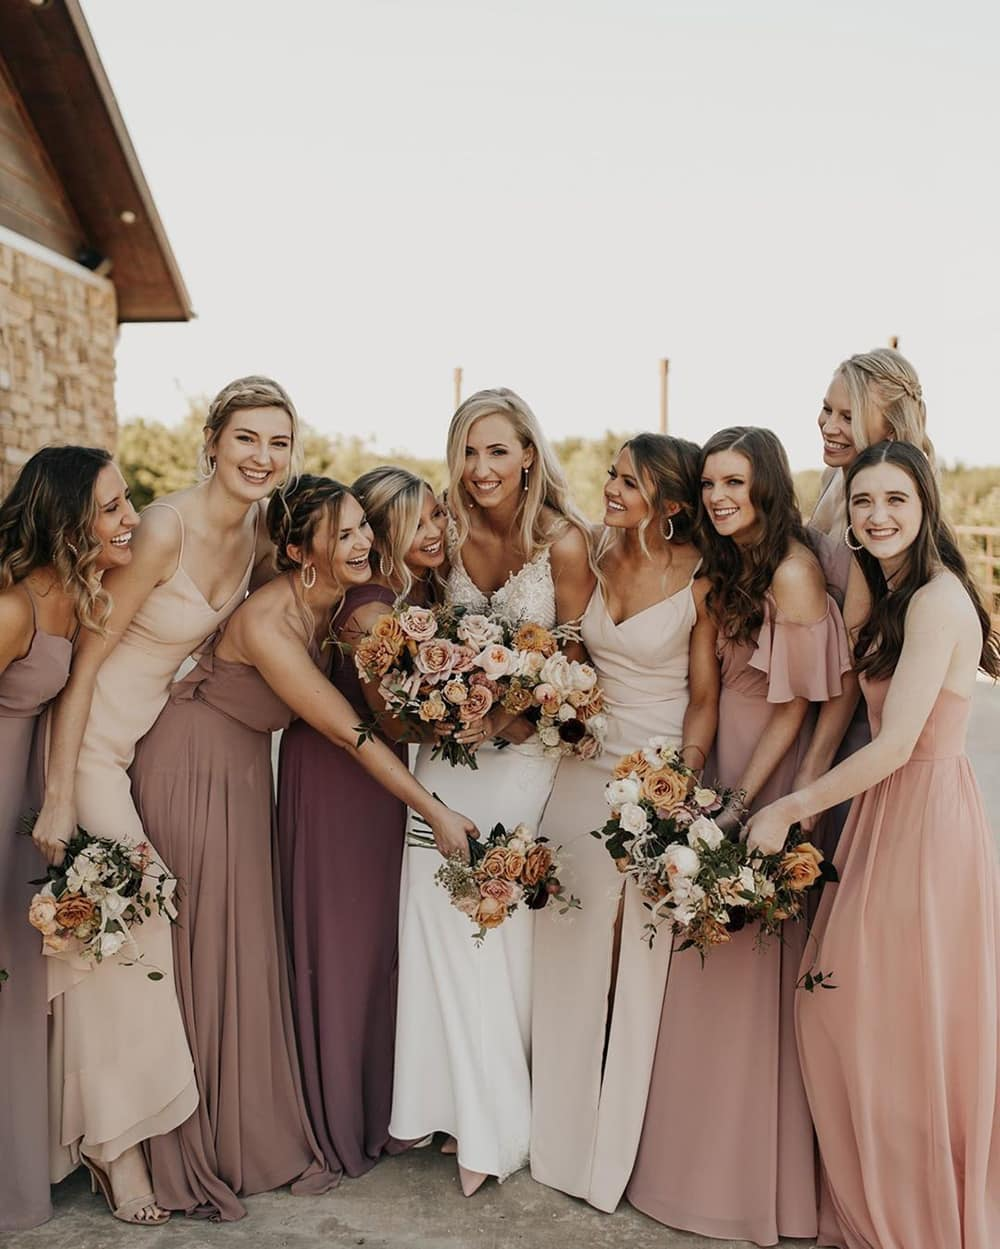 10 Fun Things to Do on Your Wedding Morning with Your Bridesmaids | Photography: Chelsea Reece Photography